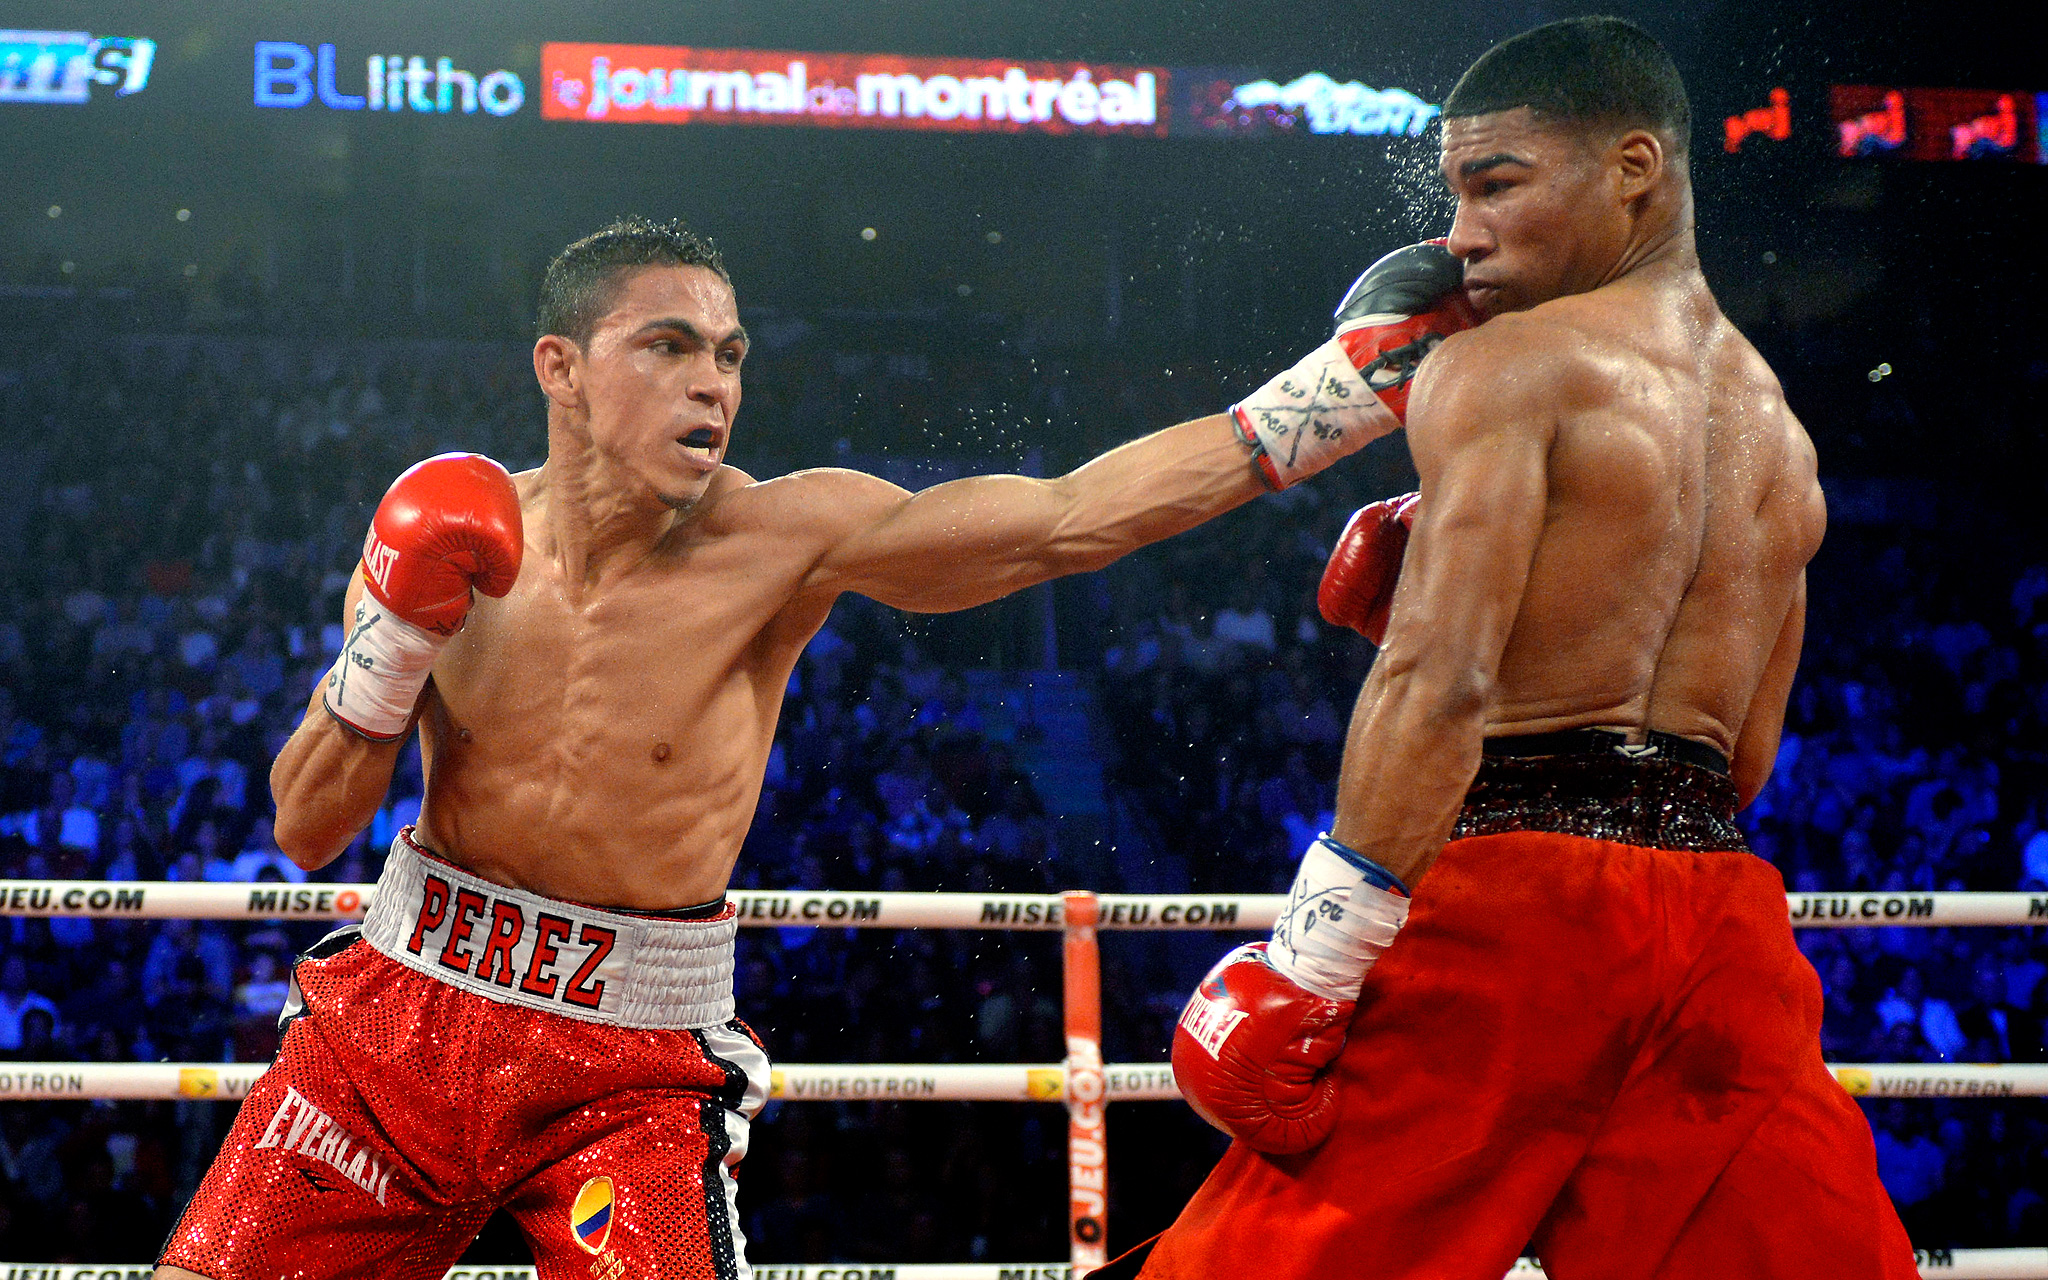 Darleys Perez connects with Yuriorkis Gamboa